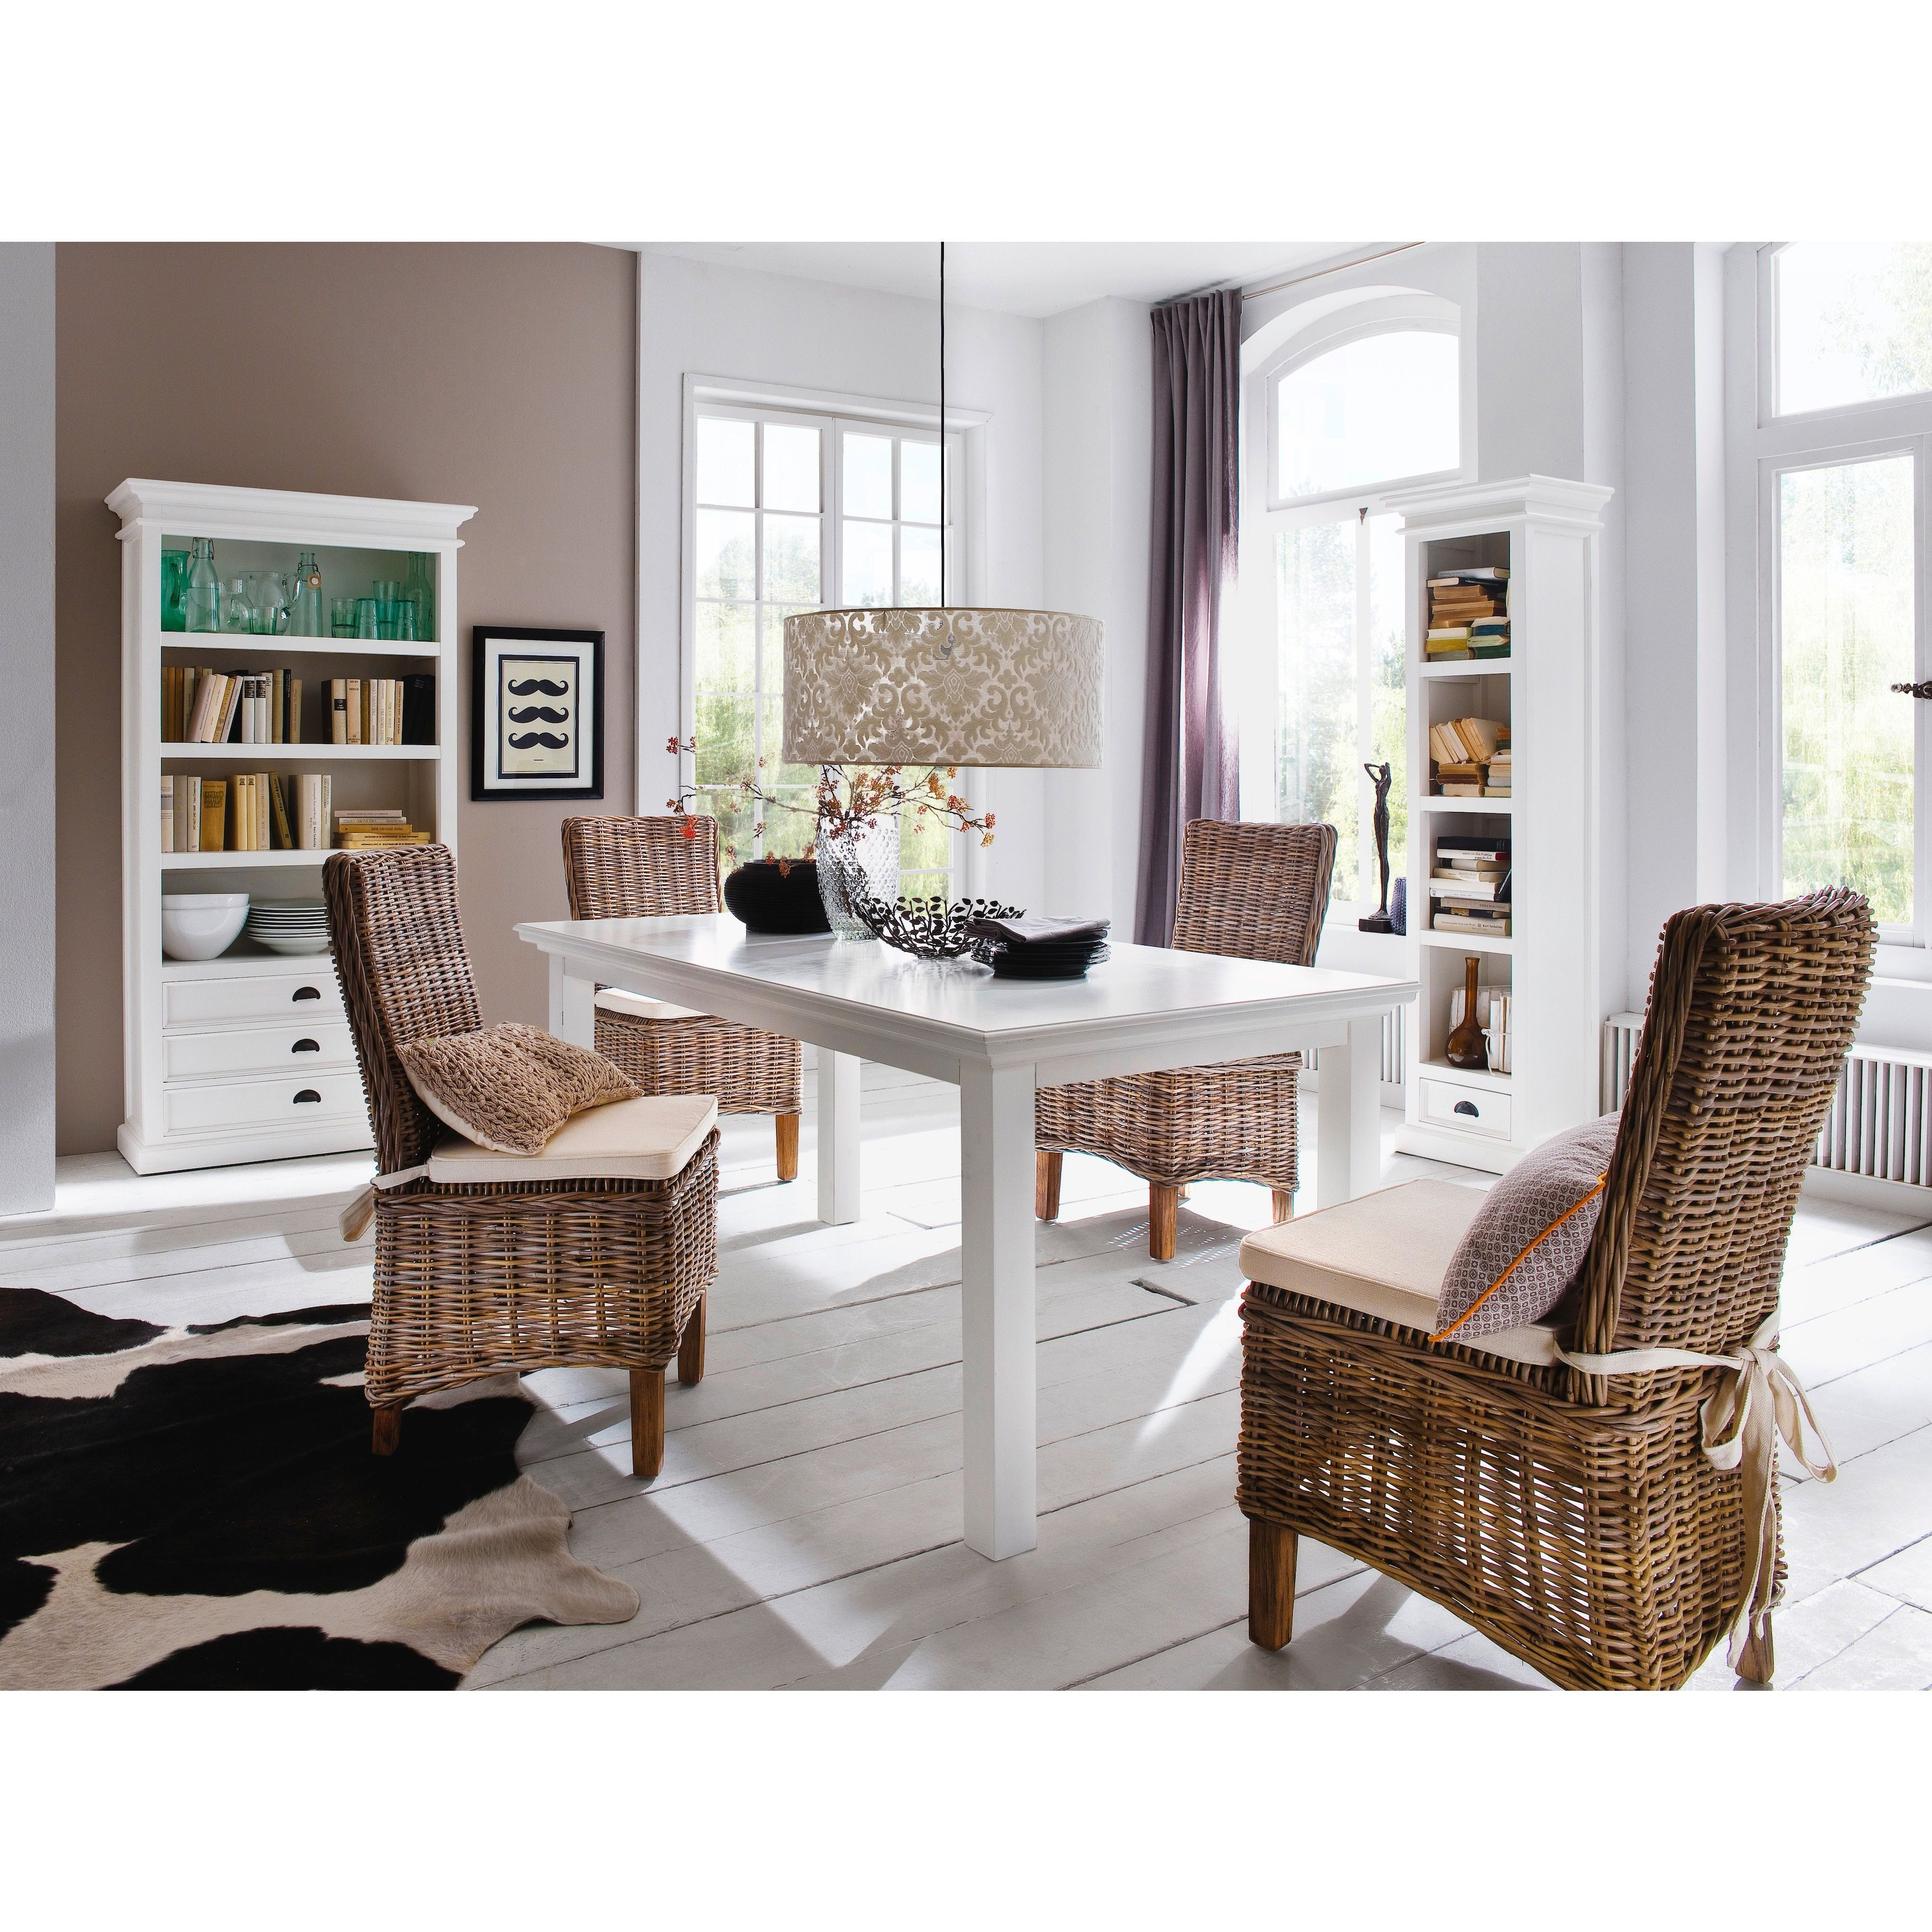 Online Shopping Bedding Furniture Electronics Jewelry Clothing More Mahogany Dining Table Dining Table Furniture